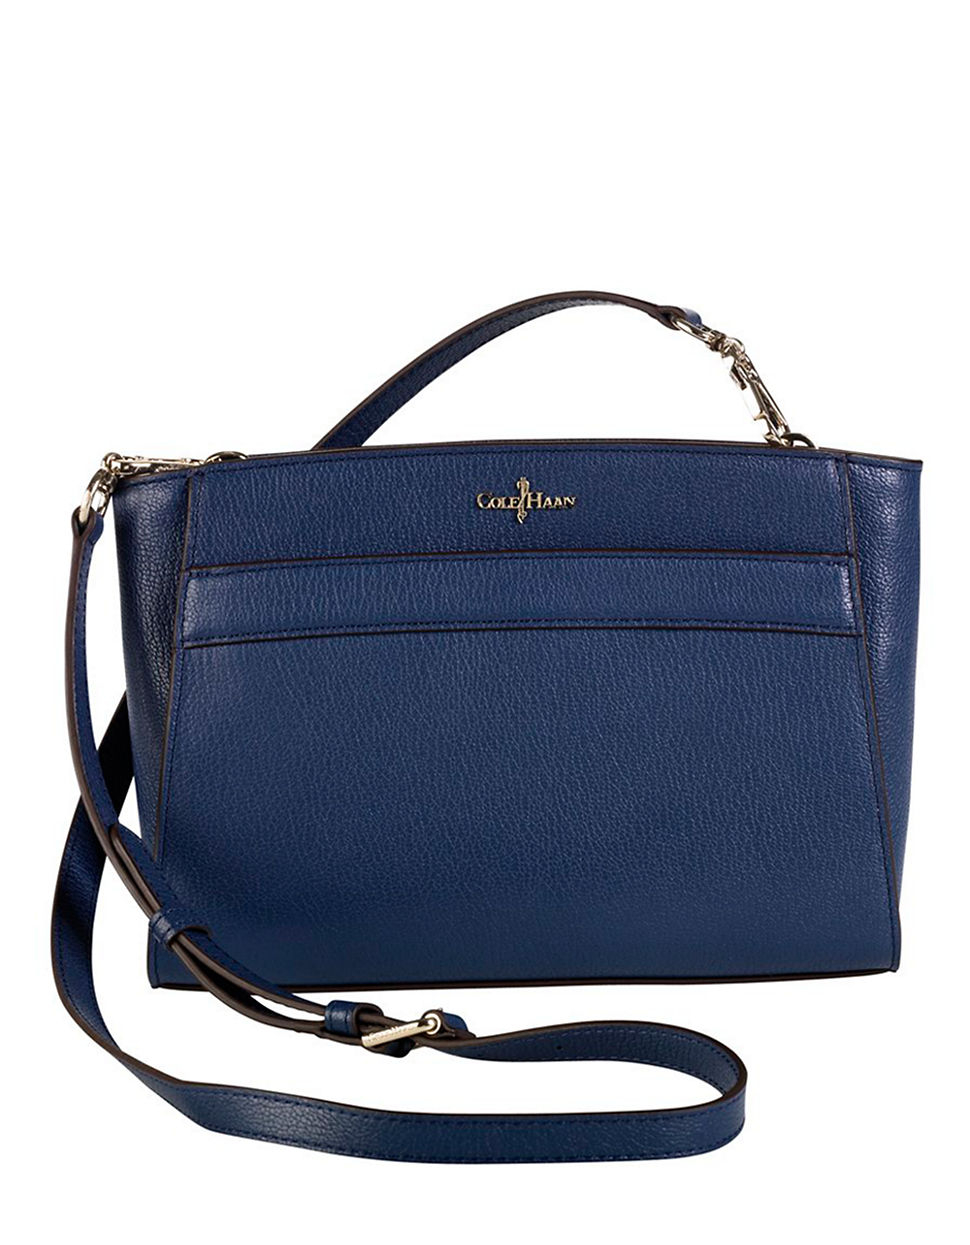 Cole Haan Leather Convertible Crossbody Bag in Blue